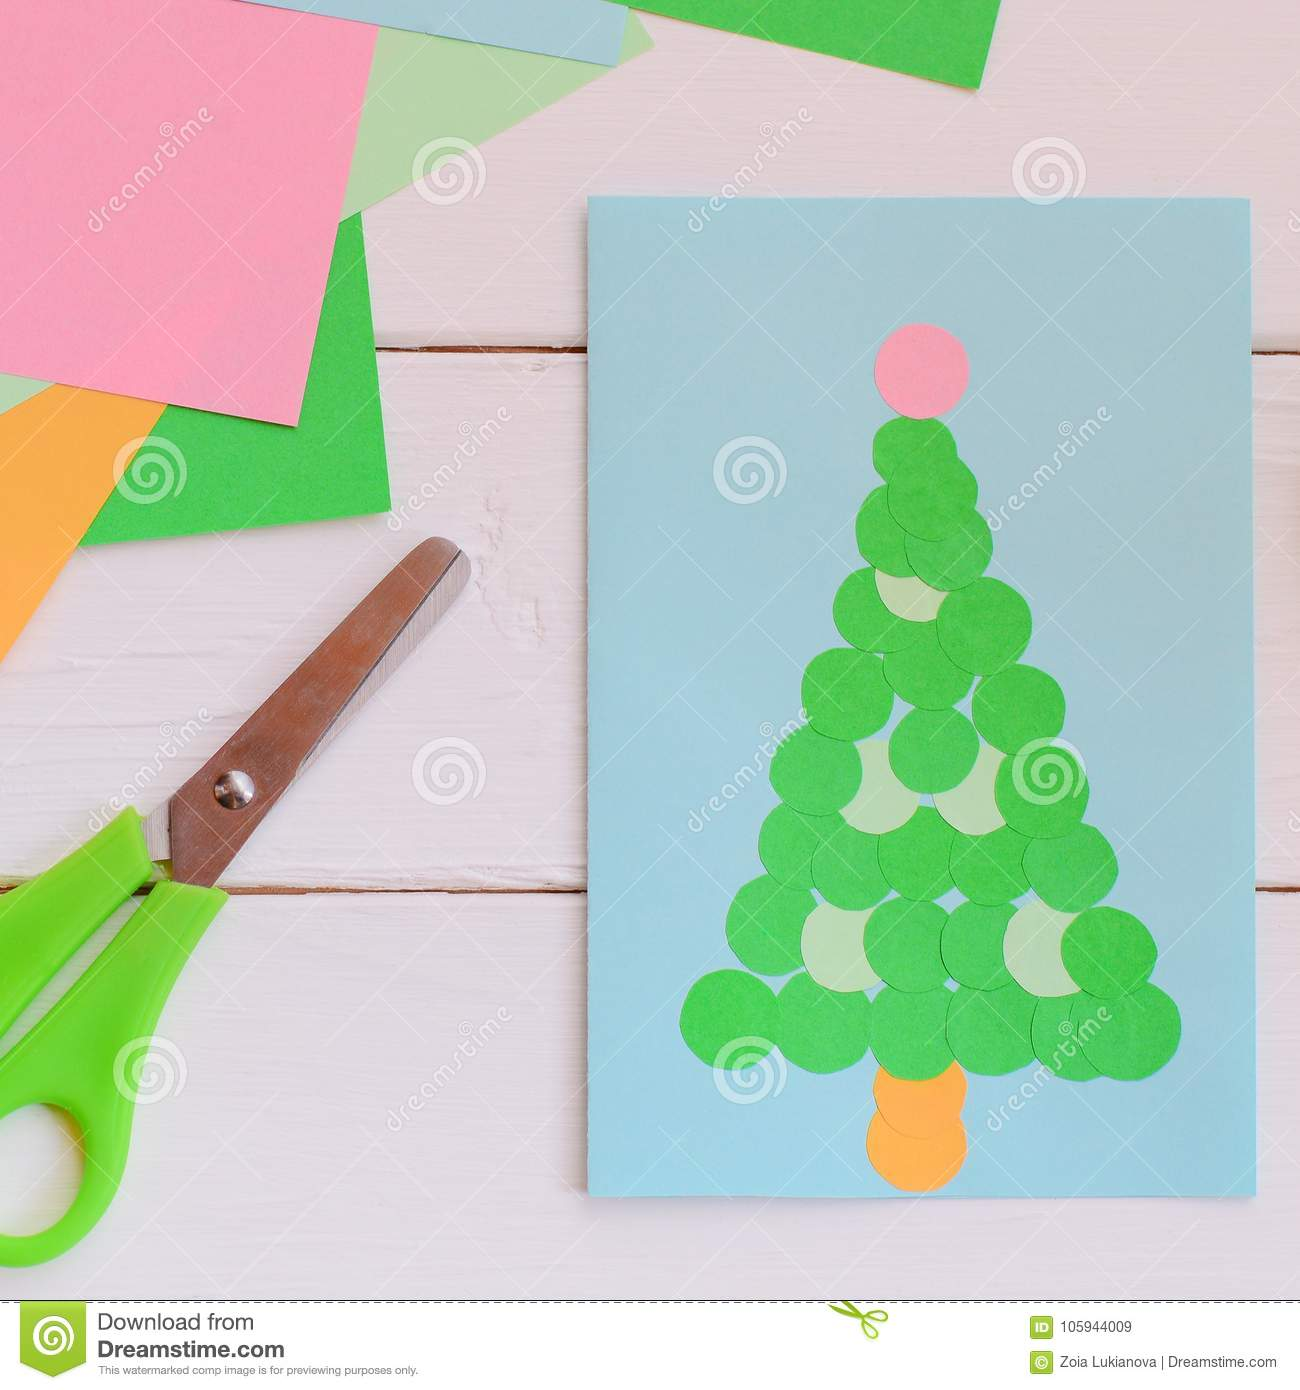 Lovely Postcard With A Christmas Tree. Christmas Greeting Card Made ...